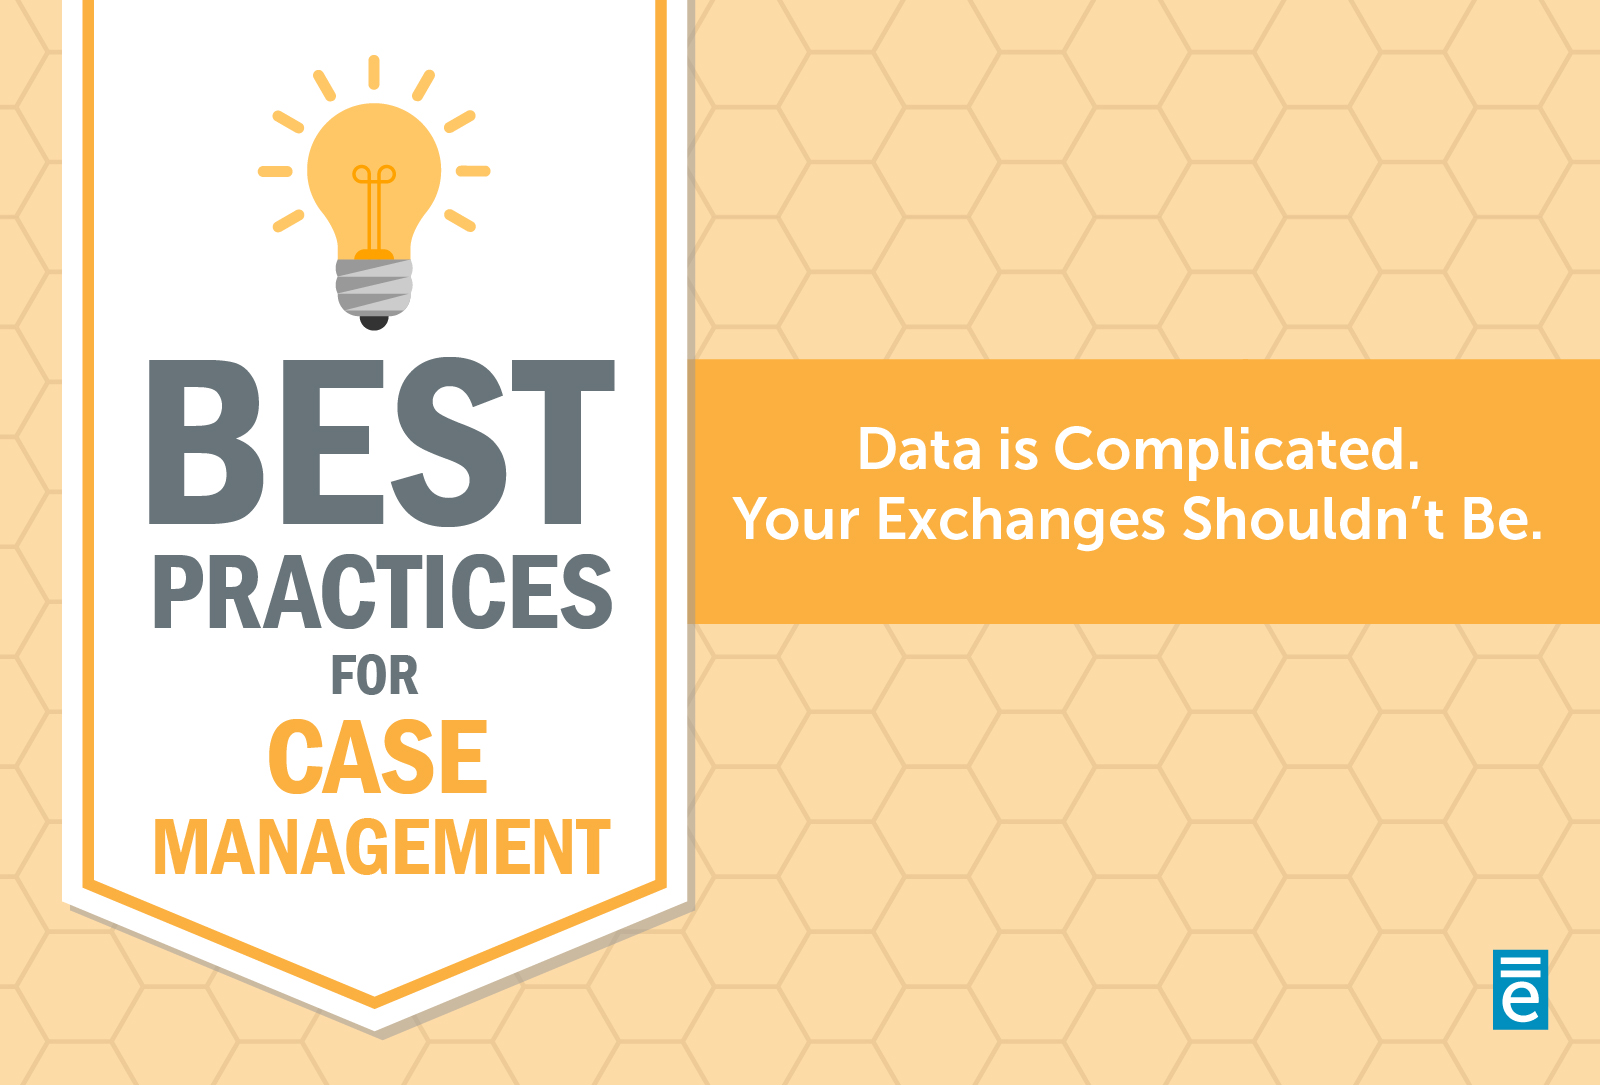 Data is Complicated. Your Exchanges Shouldn't Be.